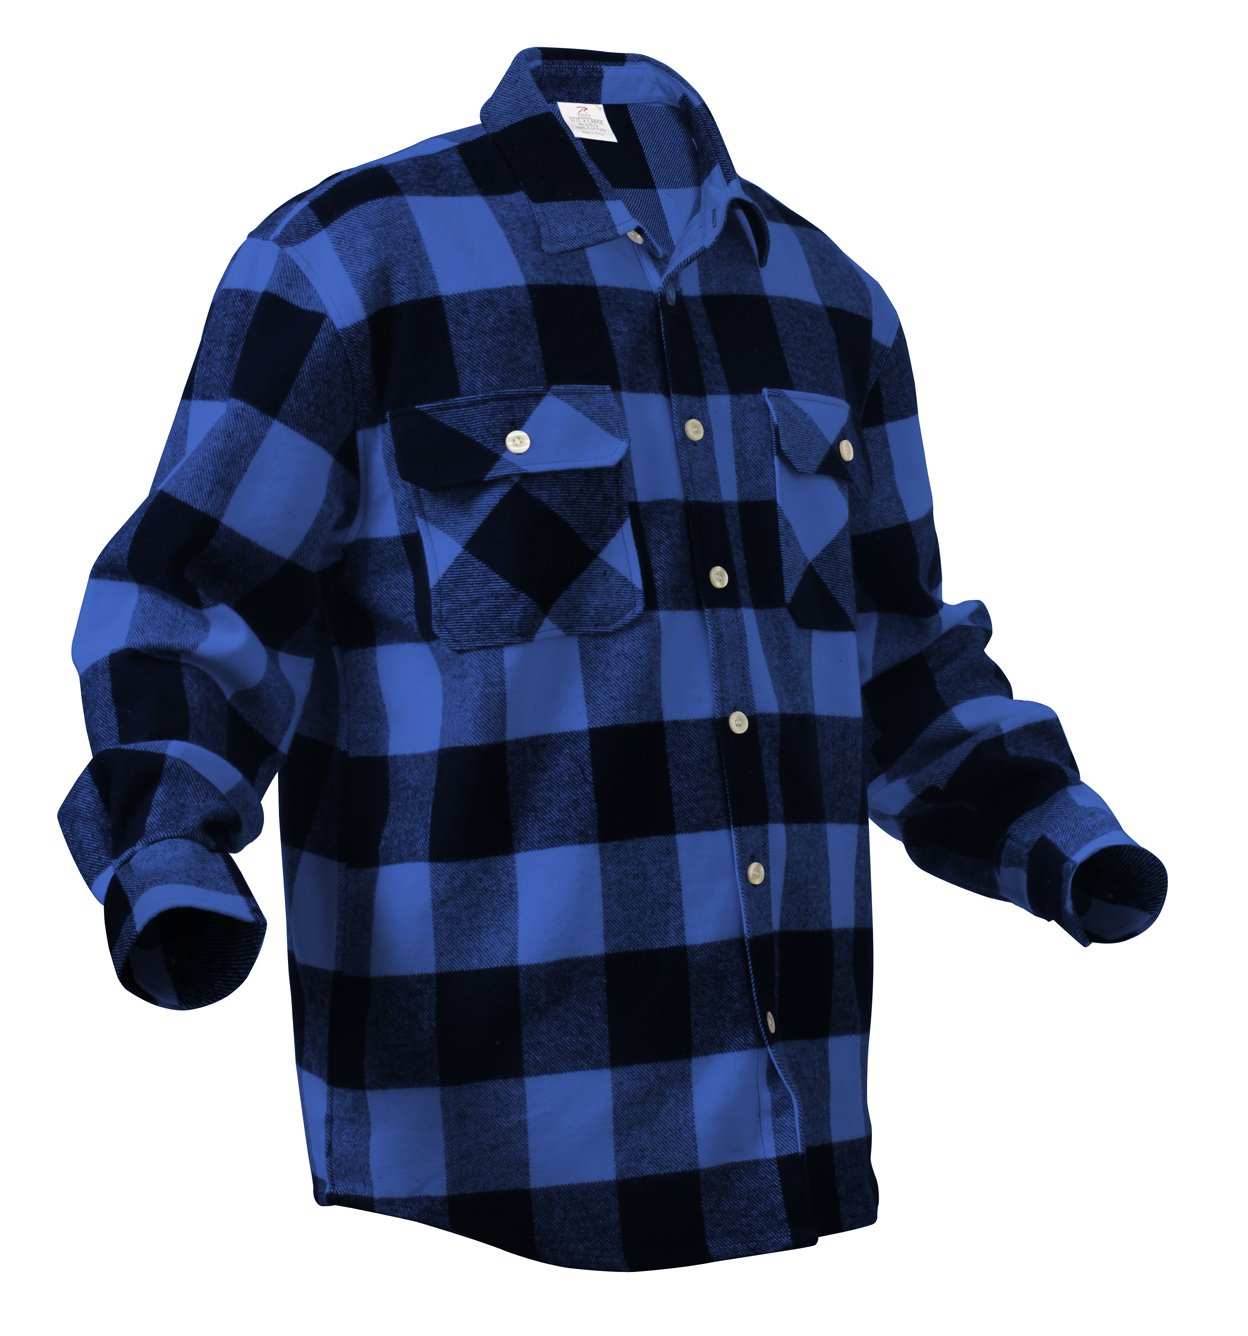 Amazon.com: Rothco Heavy Weight Plaid Flannel Shirt: Sports & Outdoors